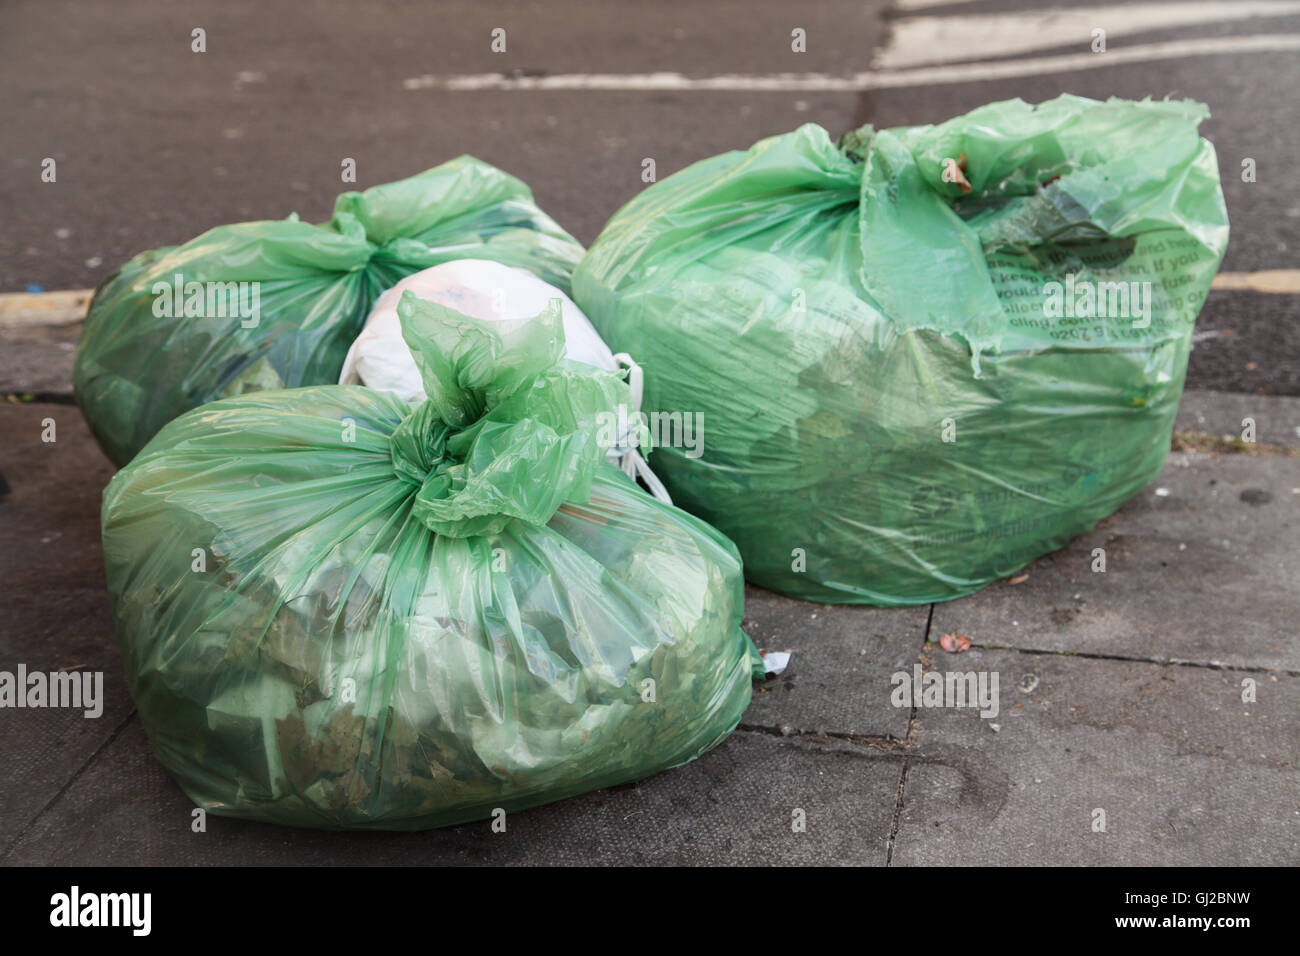 Green rubbish bags / trash in the city. - Stock Image